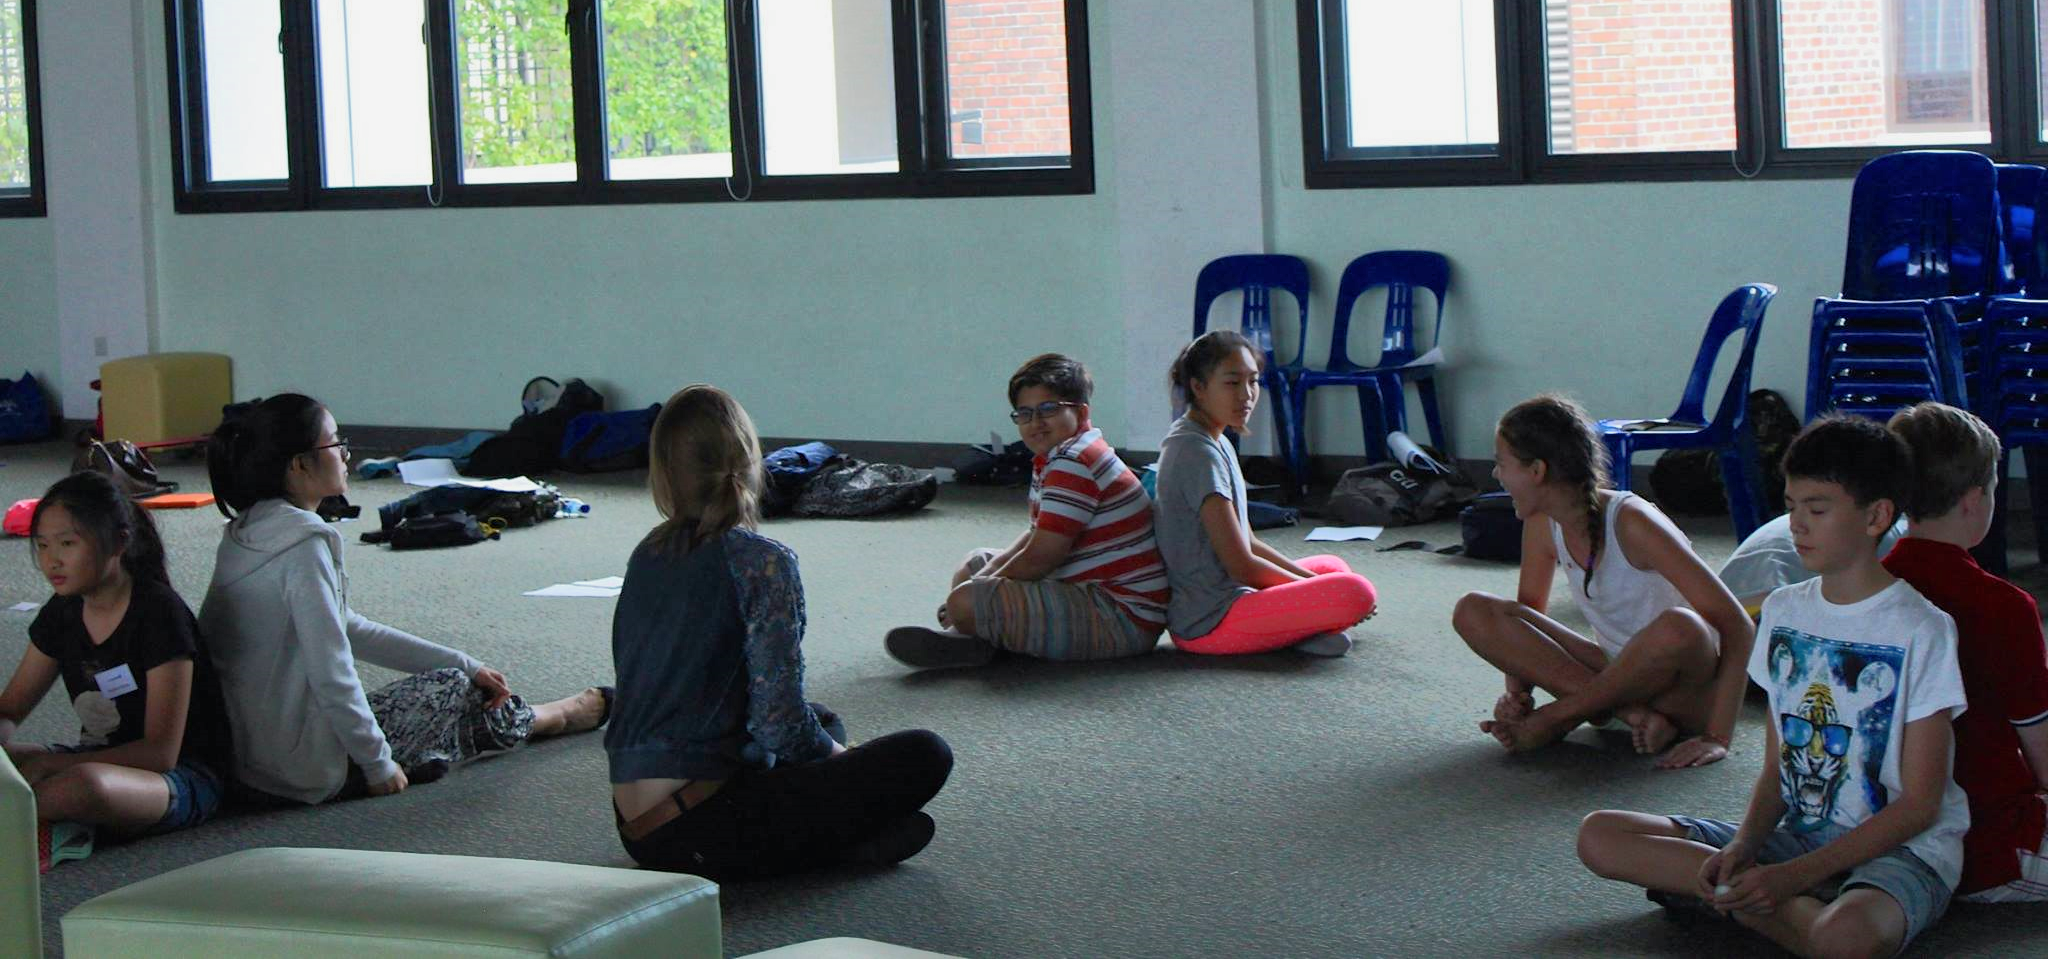 The mind changes the brain changes the mind: mindfulness for young people in action. A beautiful and engaging and powerful session, handing over a tool that in my eyes could well transform a young person's life on its own. Here I have the students sit back to back and practise focussing in on breath, synchronising breath with a partner, and becoming aware of their own, and another persons' body.